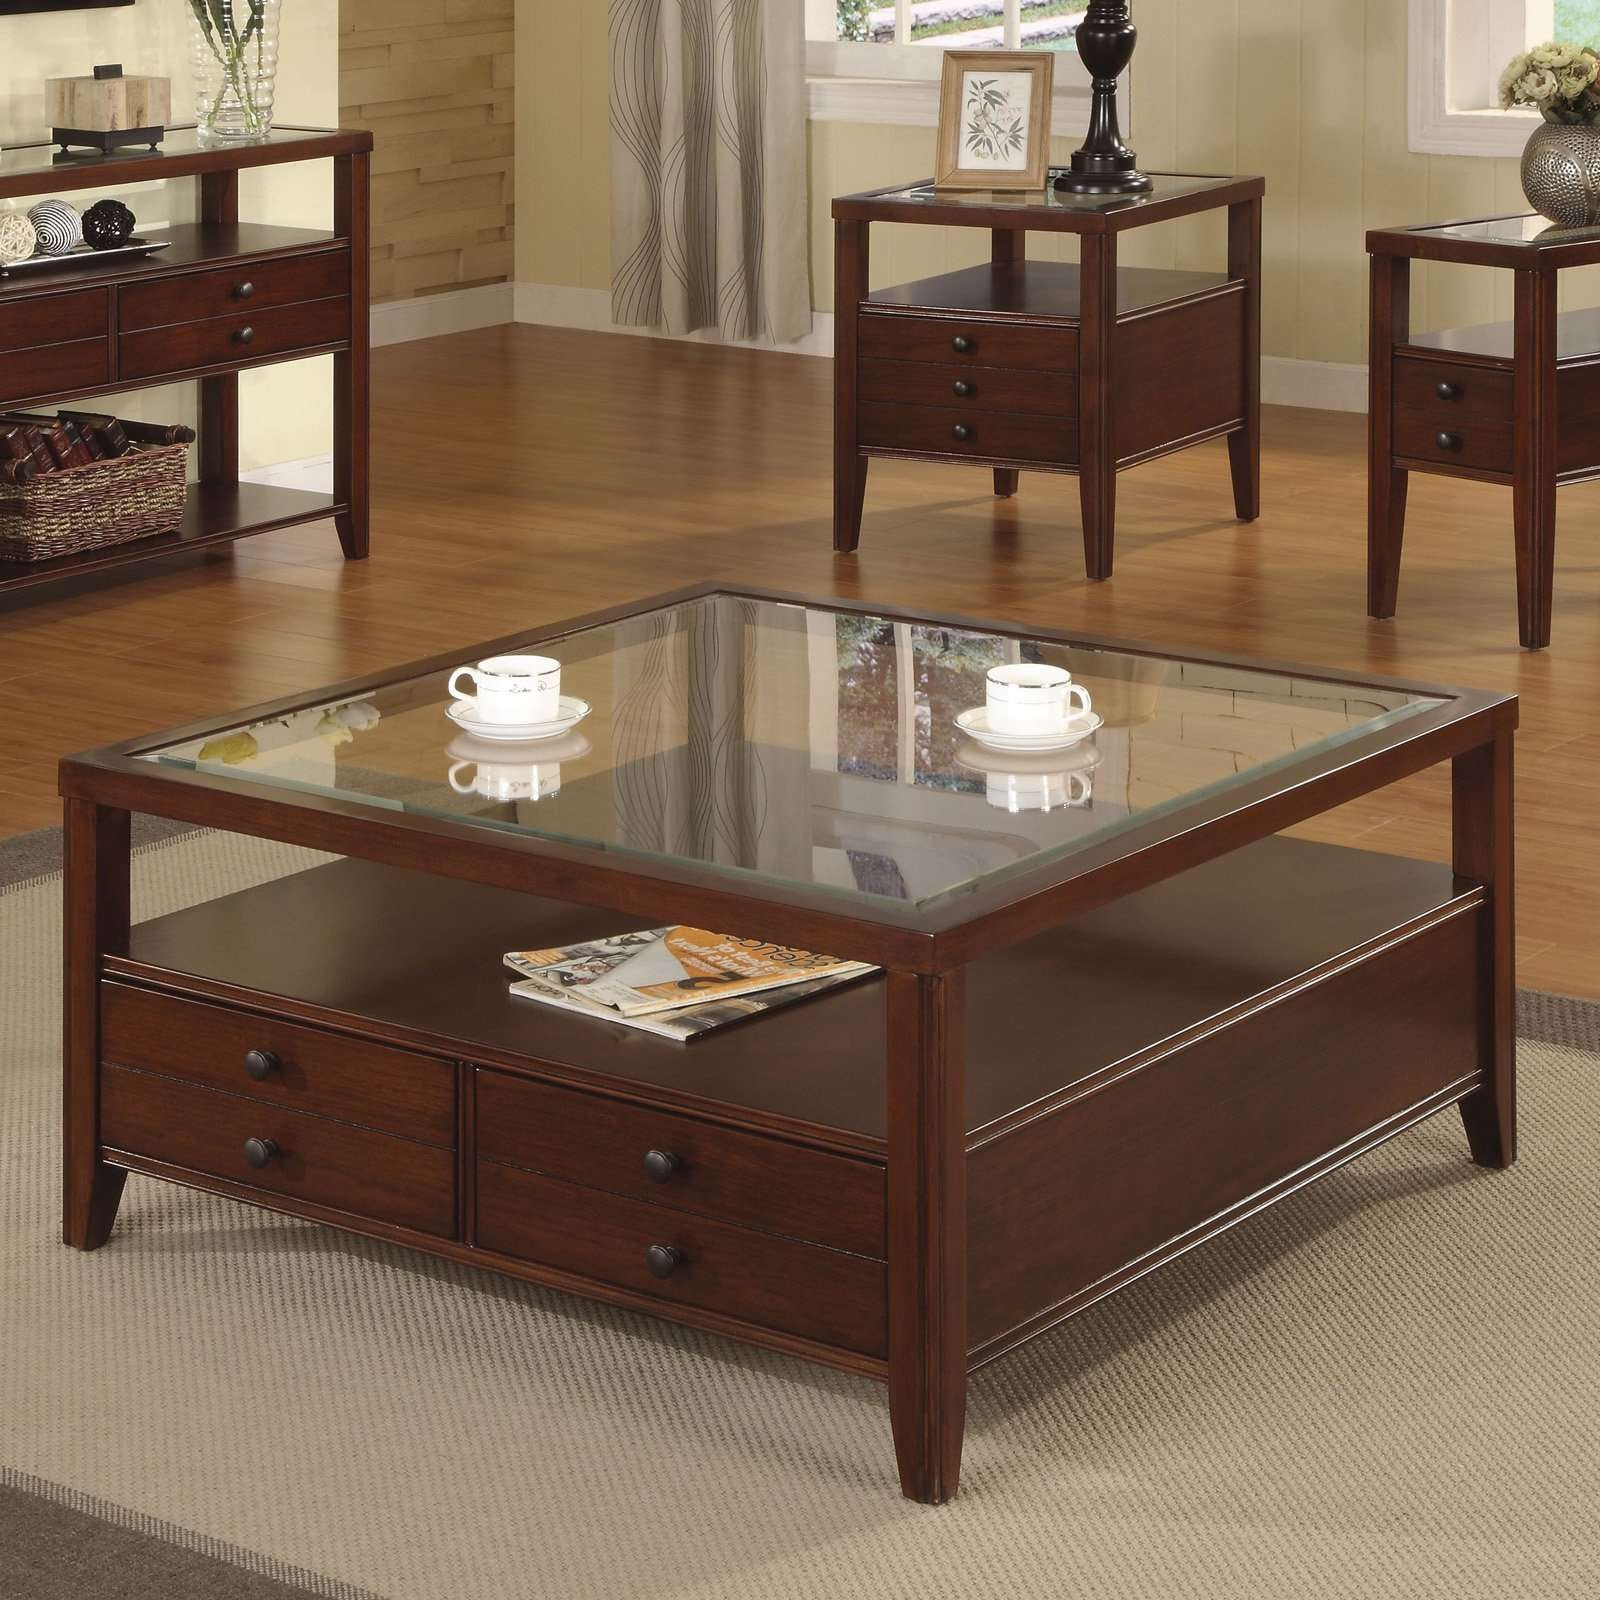 Most Popular Square Coffee Table With Storage Drawers Within Coffee Tables : Storage Tables With Baskets Bedroom Stunning (View 12 of 20)